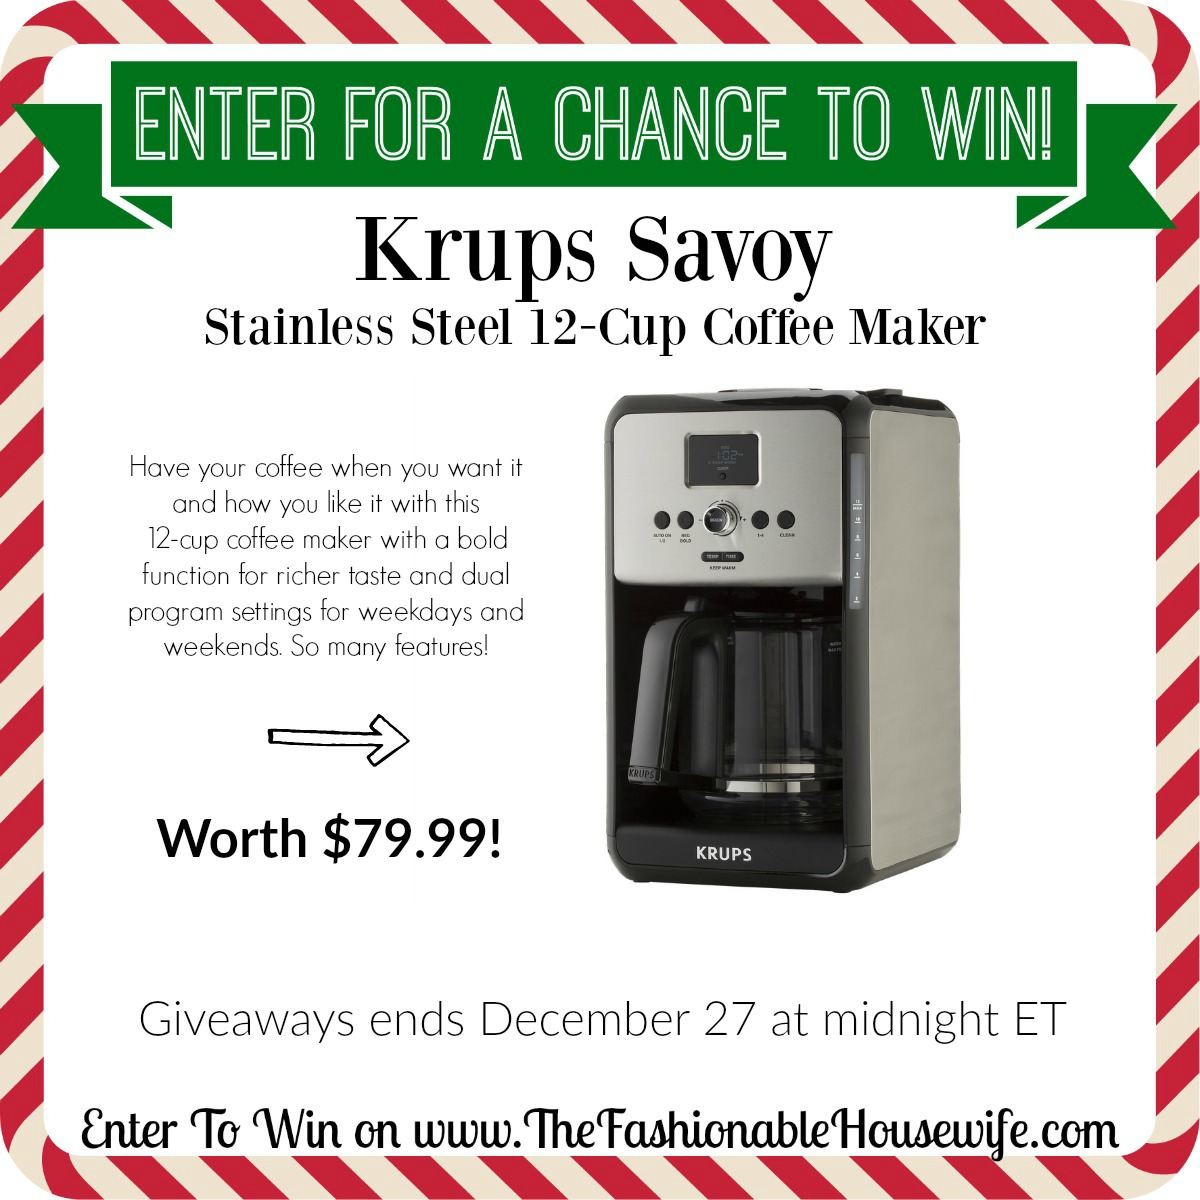 enter to win krups savoy coffee maker